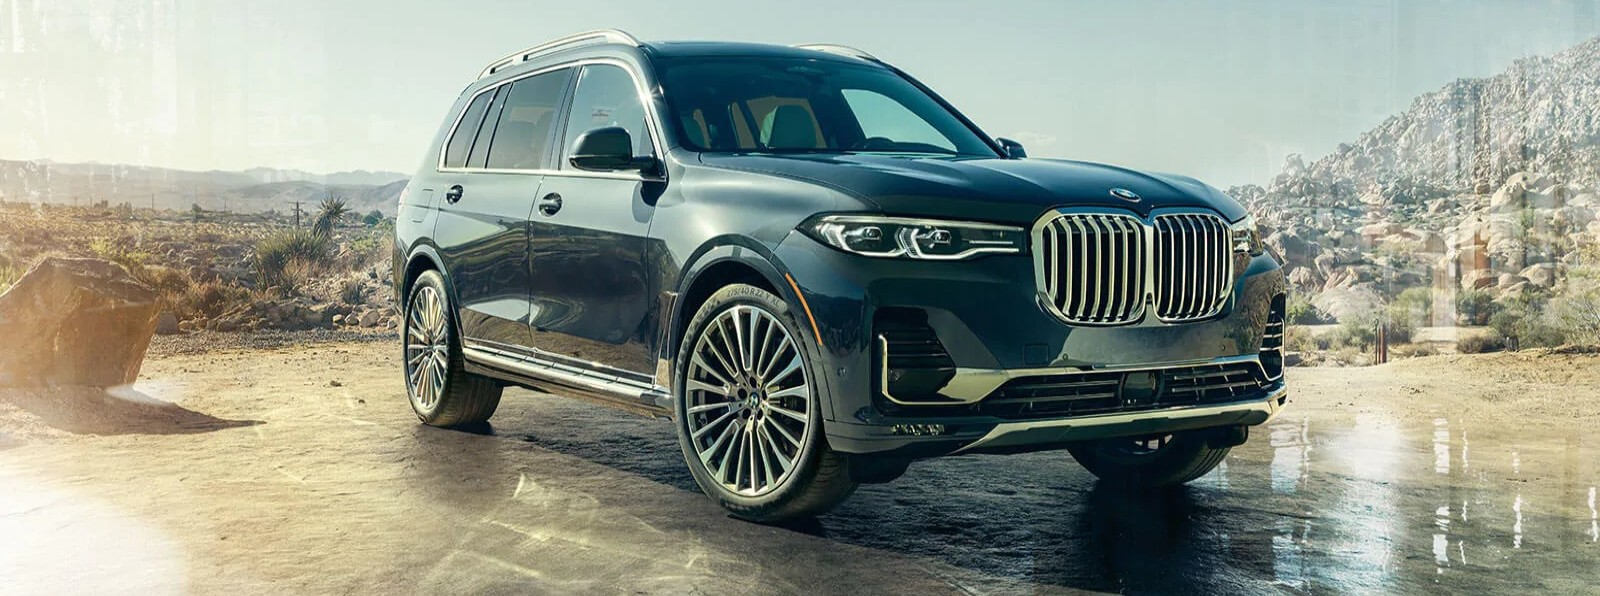 2020 BMW X7 Leasing near Bossier City, LA